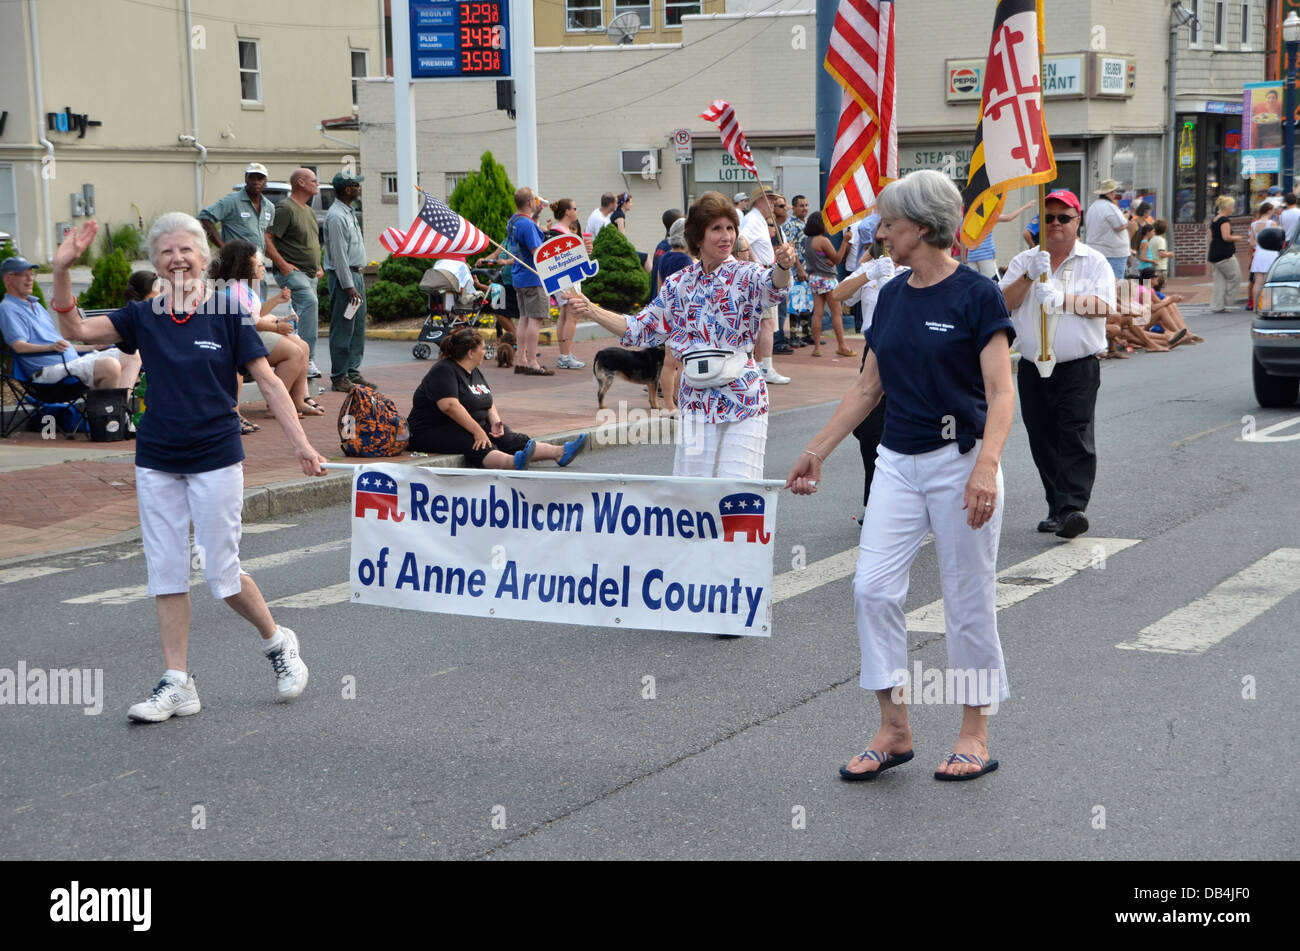 Republican women group march in the July4 parade in Annapolis, Maryland - Stock Image